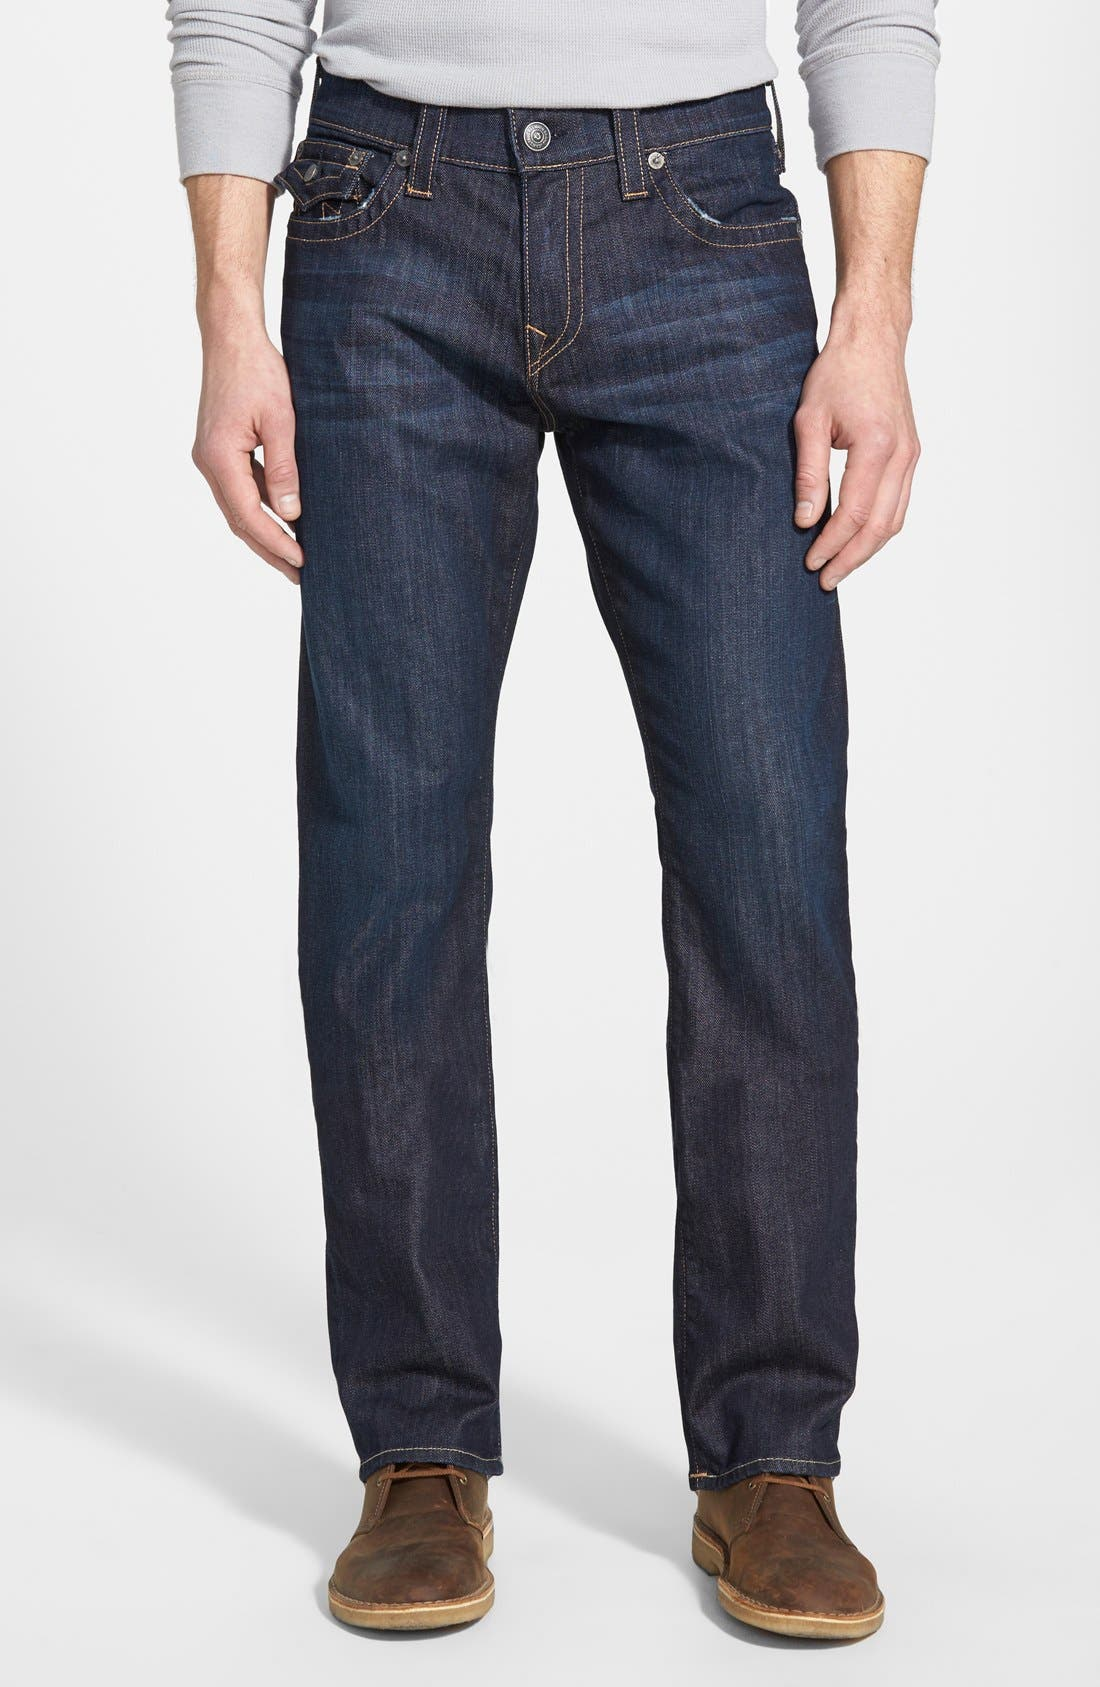 Main Image - True Religion Brand Jeans 'Ricky' Relaxed Fit Jeans (Wanted Man)